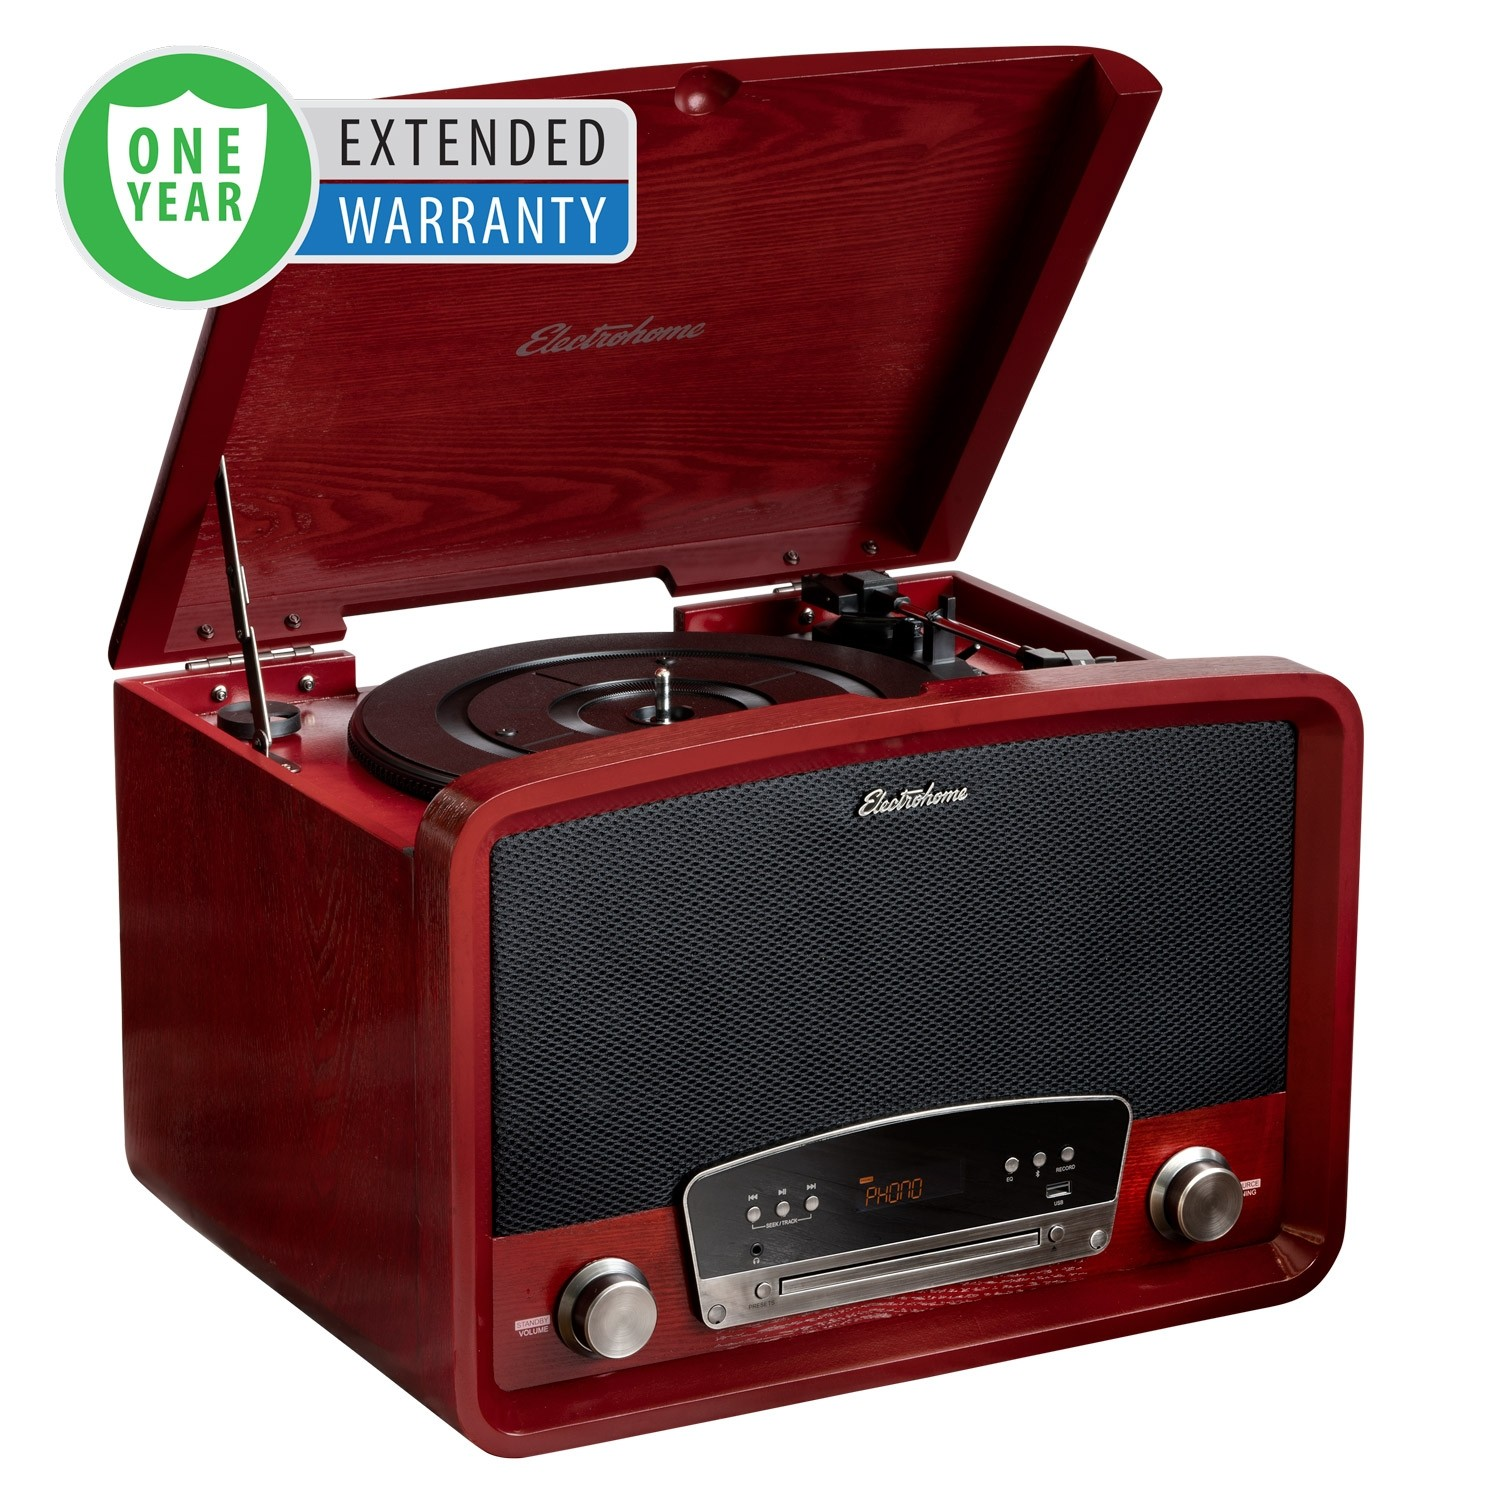 1 Year Extended Warranty for Kingston 7-in-1 Vinyl Record Player - Main Cherry